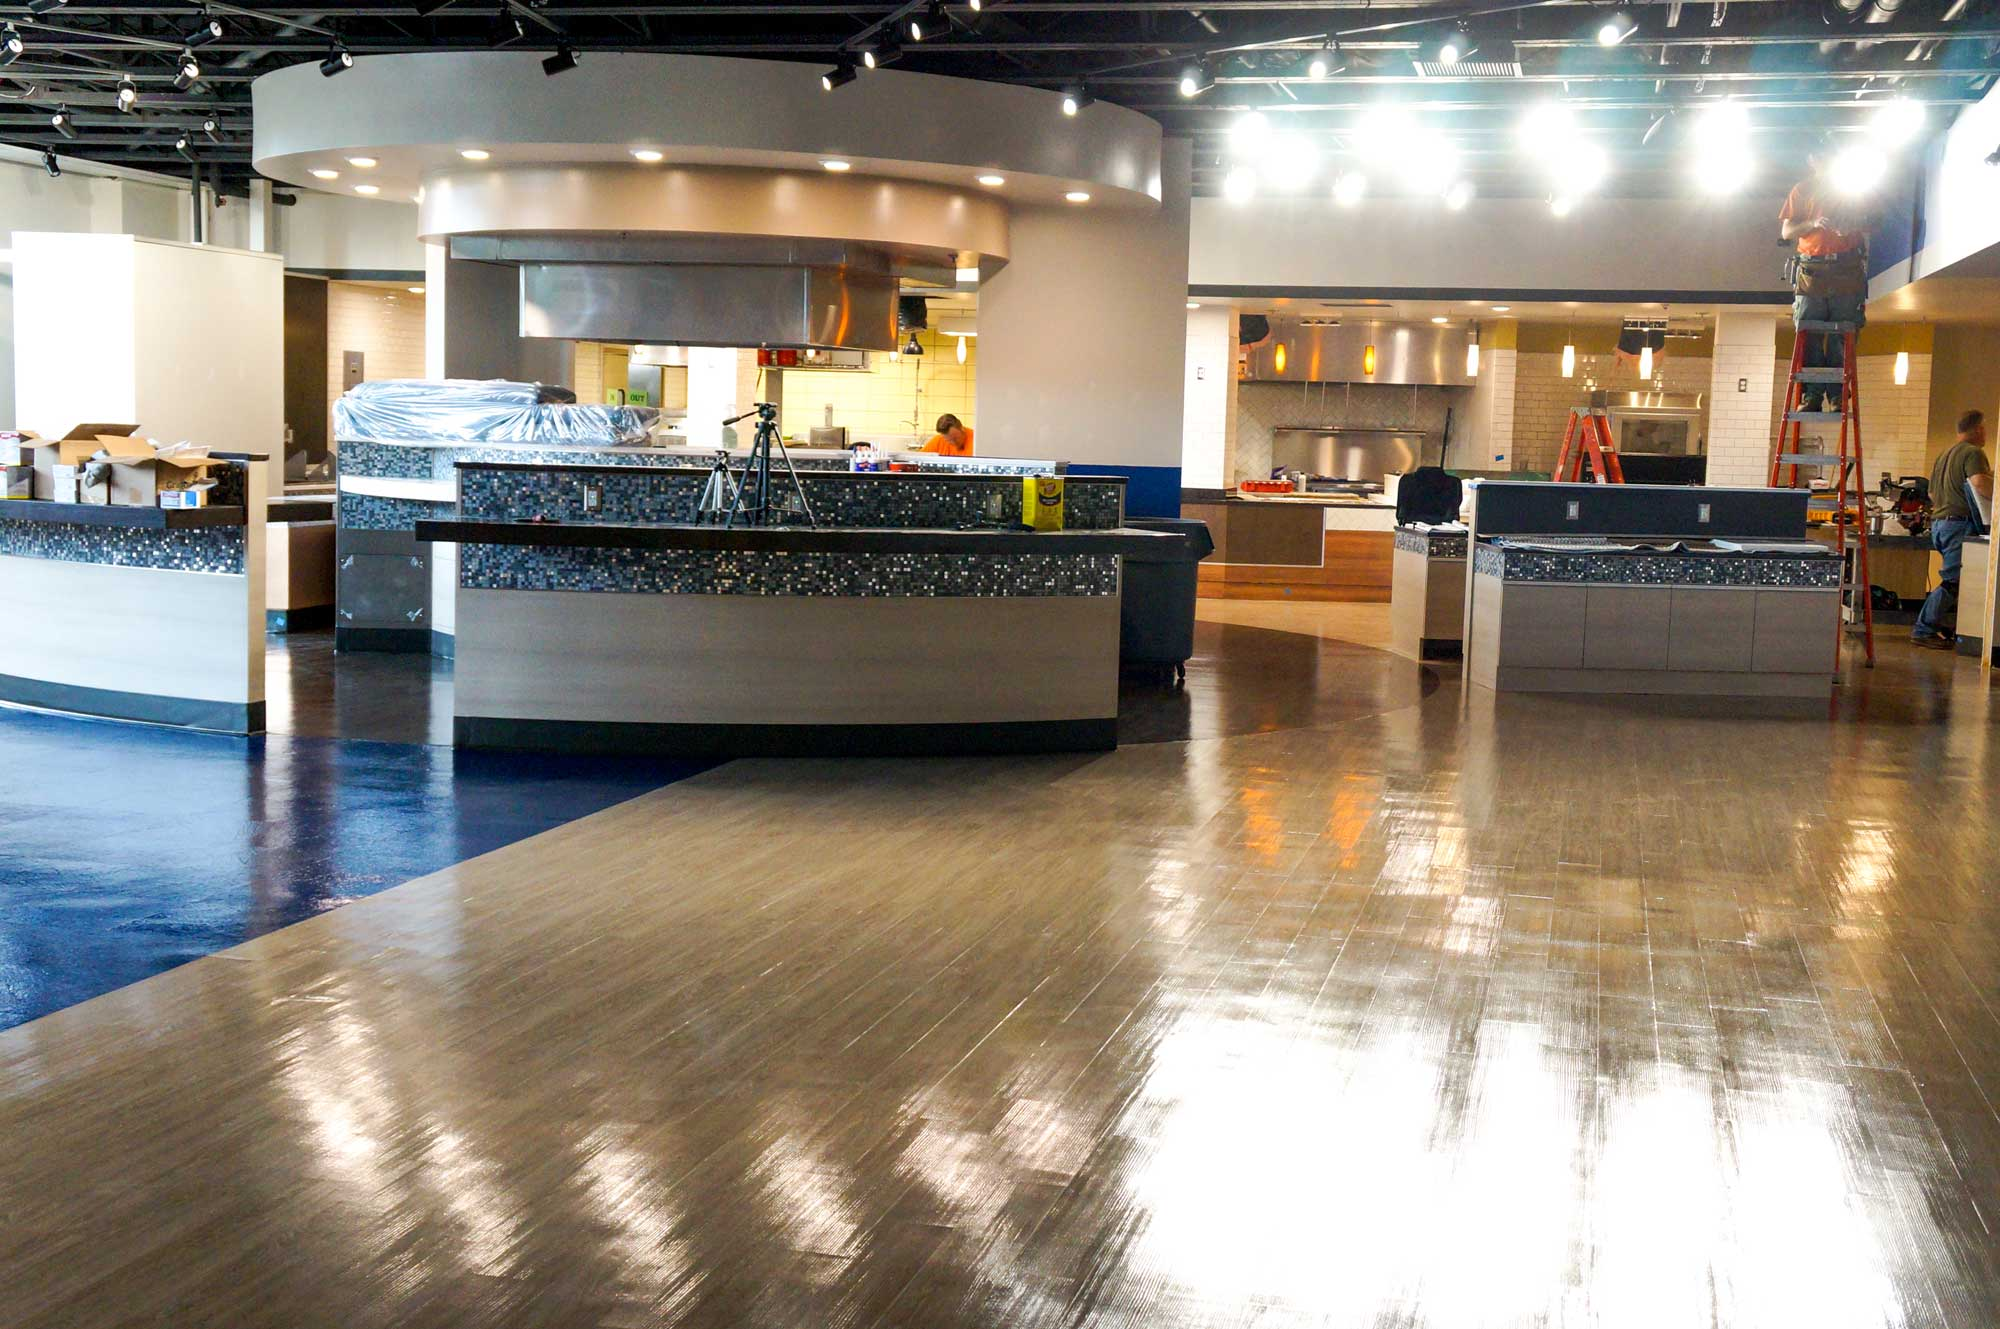 The work on Marletto's is progressing. The space will be open by the end of the month.